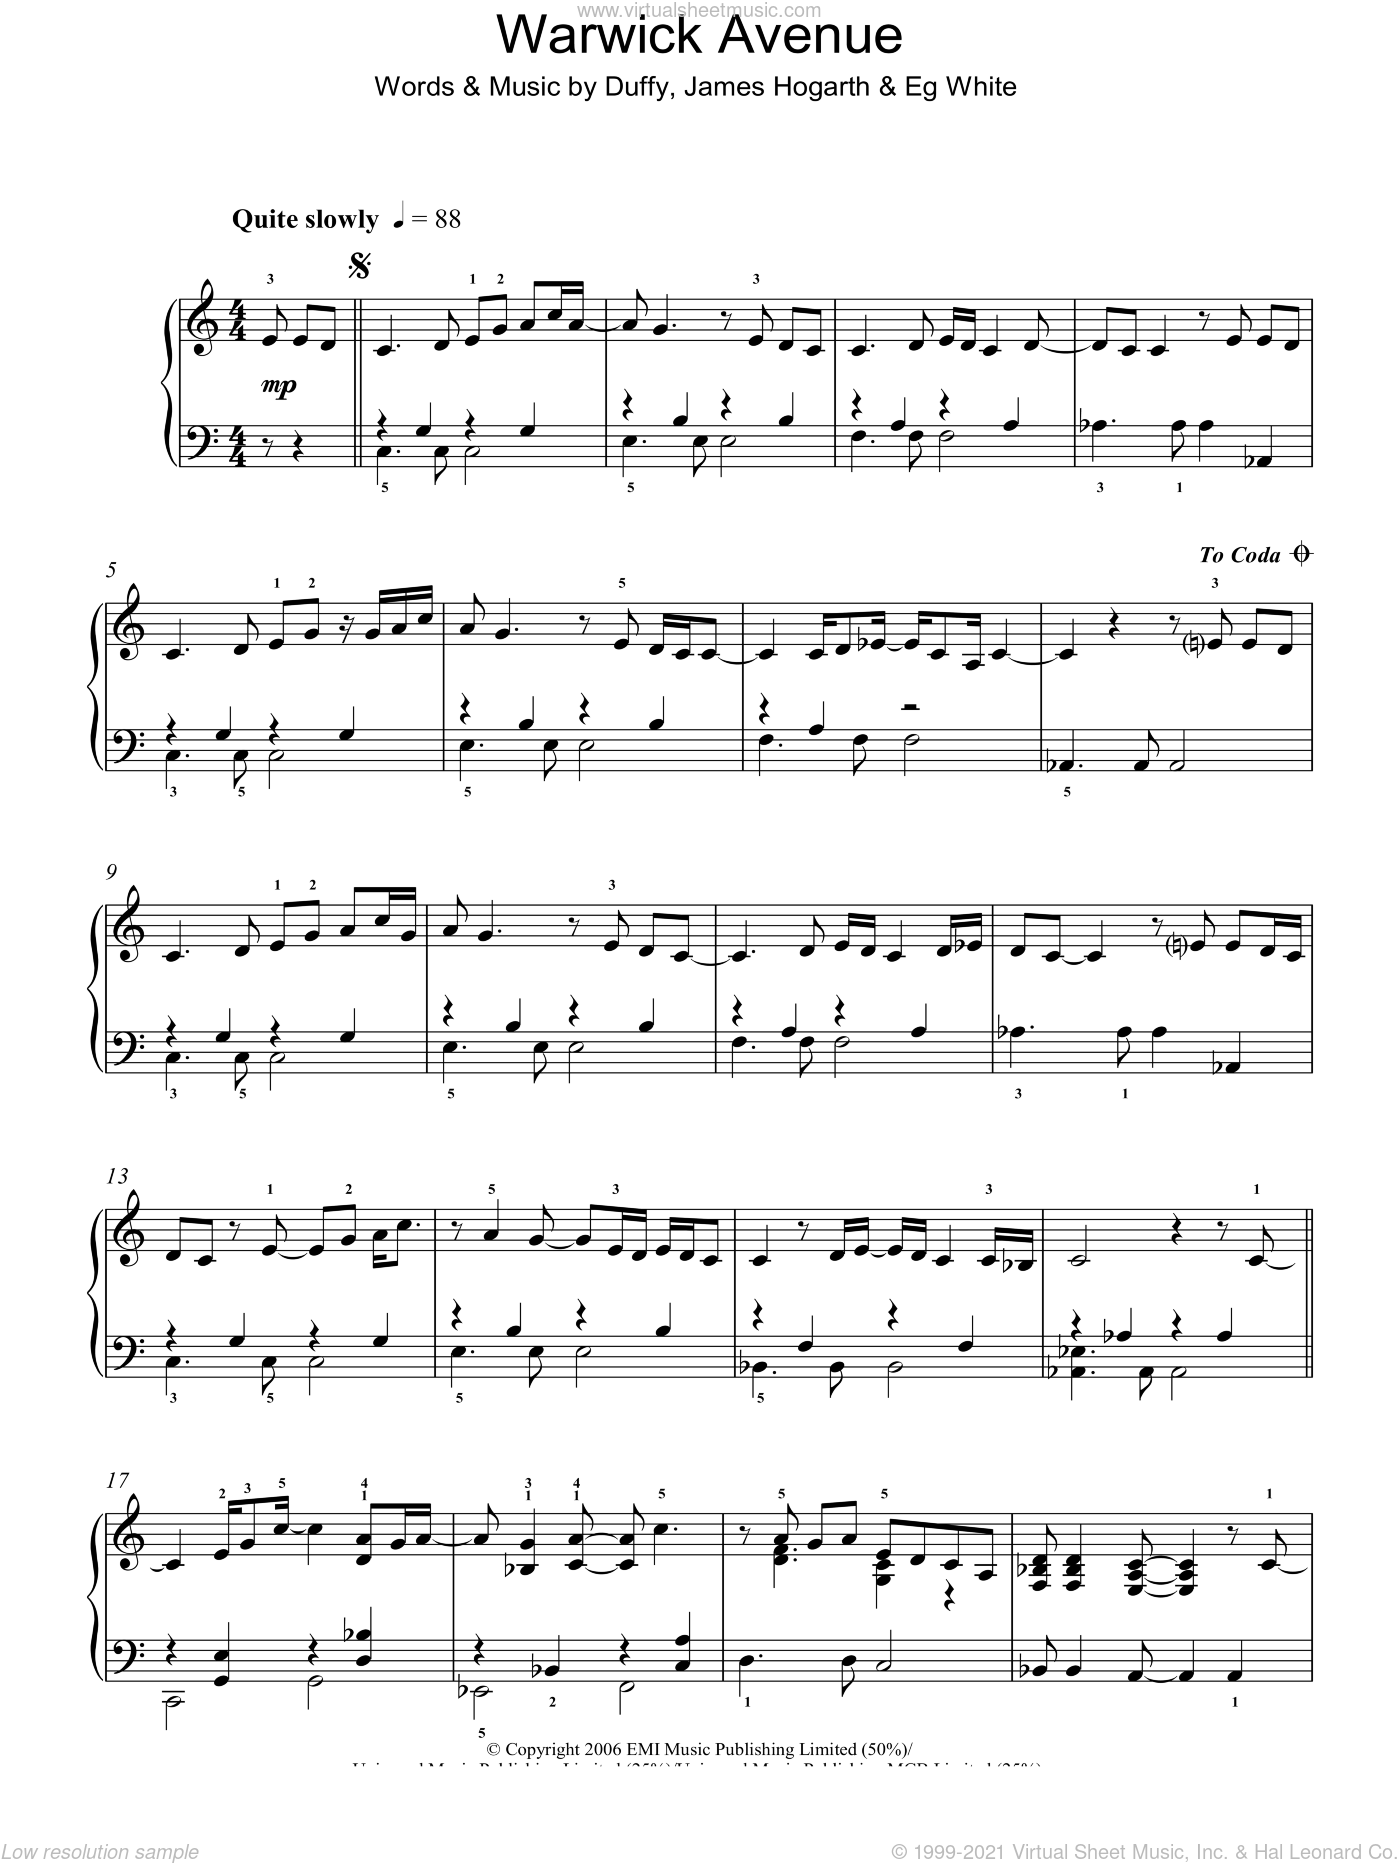 Warwick Avenue sheet music for piano solo by Duffy, Aimee Duffy, Francis White and James Hogarth, intermediate skill level